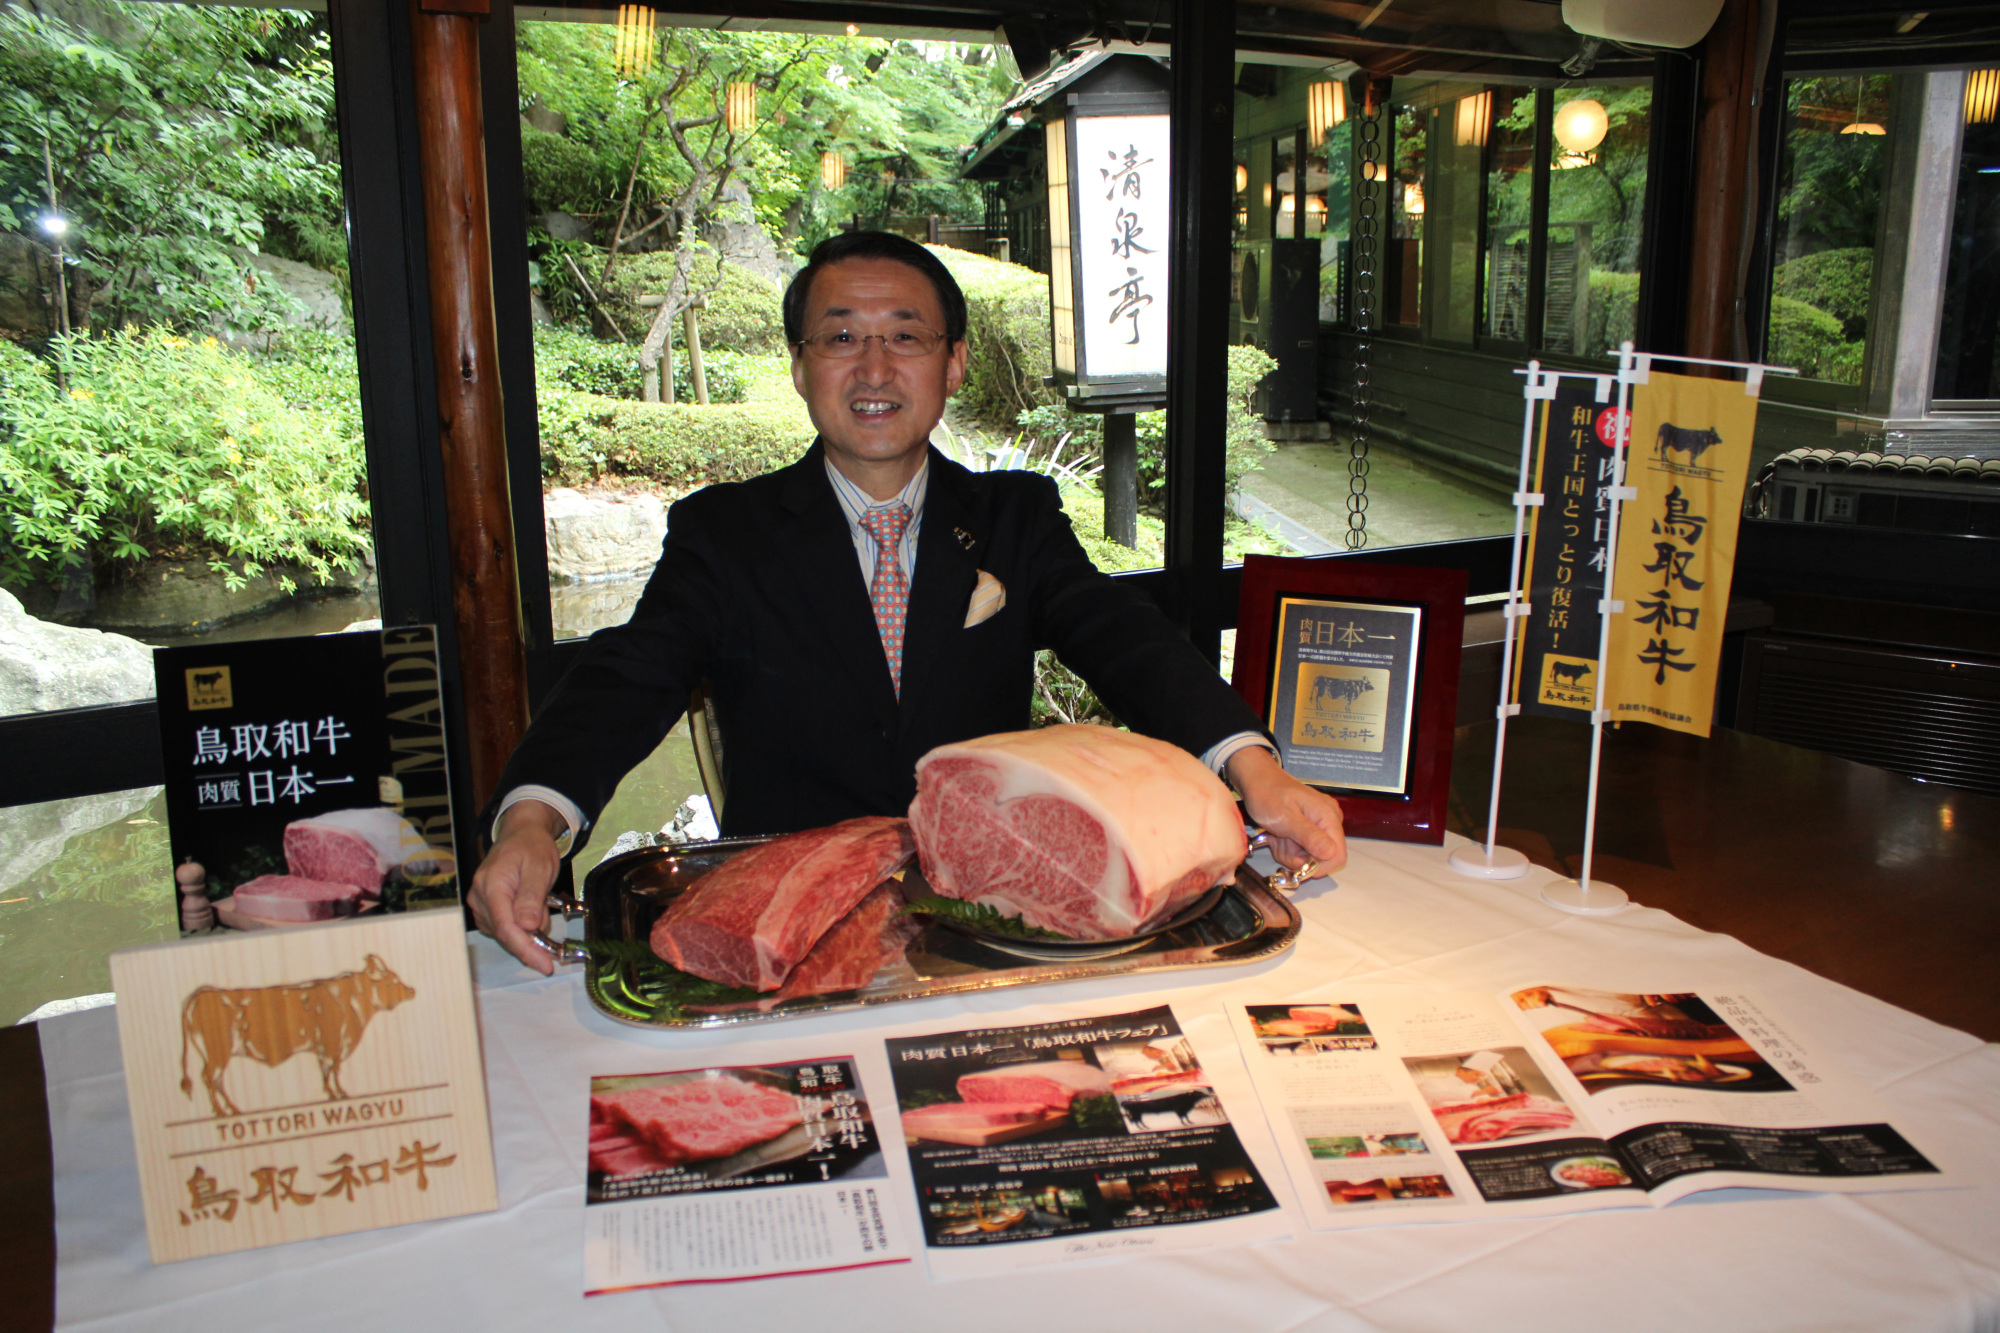 Tottori Gov. Shinji Hirai with blocks of premium Tottori Wagyu during an interview at Seisen-tei restaurant at Hotel New Otani Tokyo on June 17. | MASAAKI KAMEDA